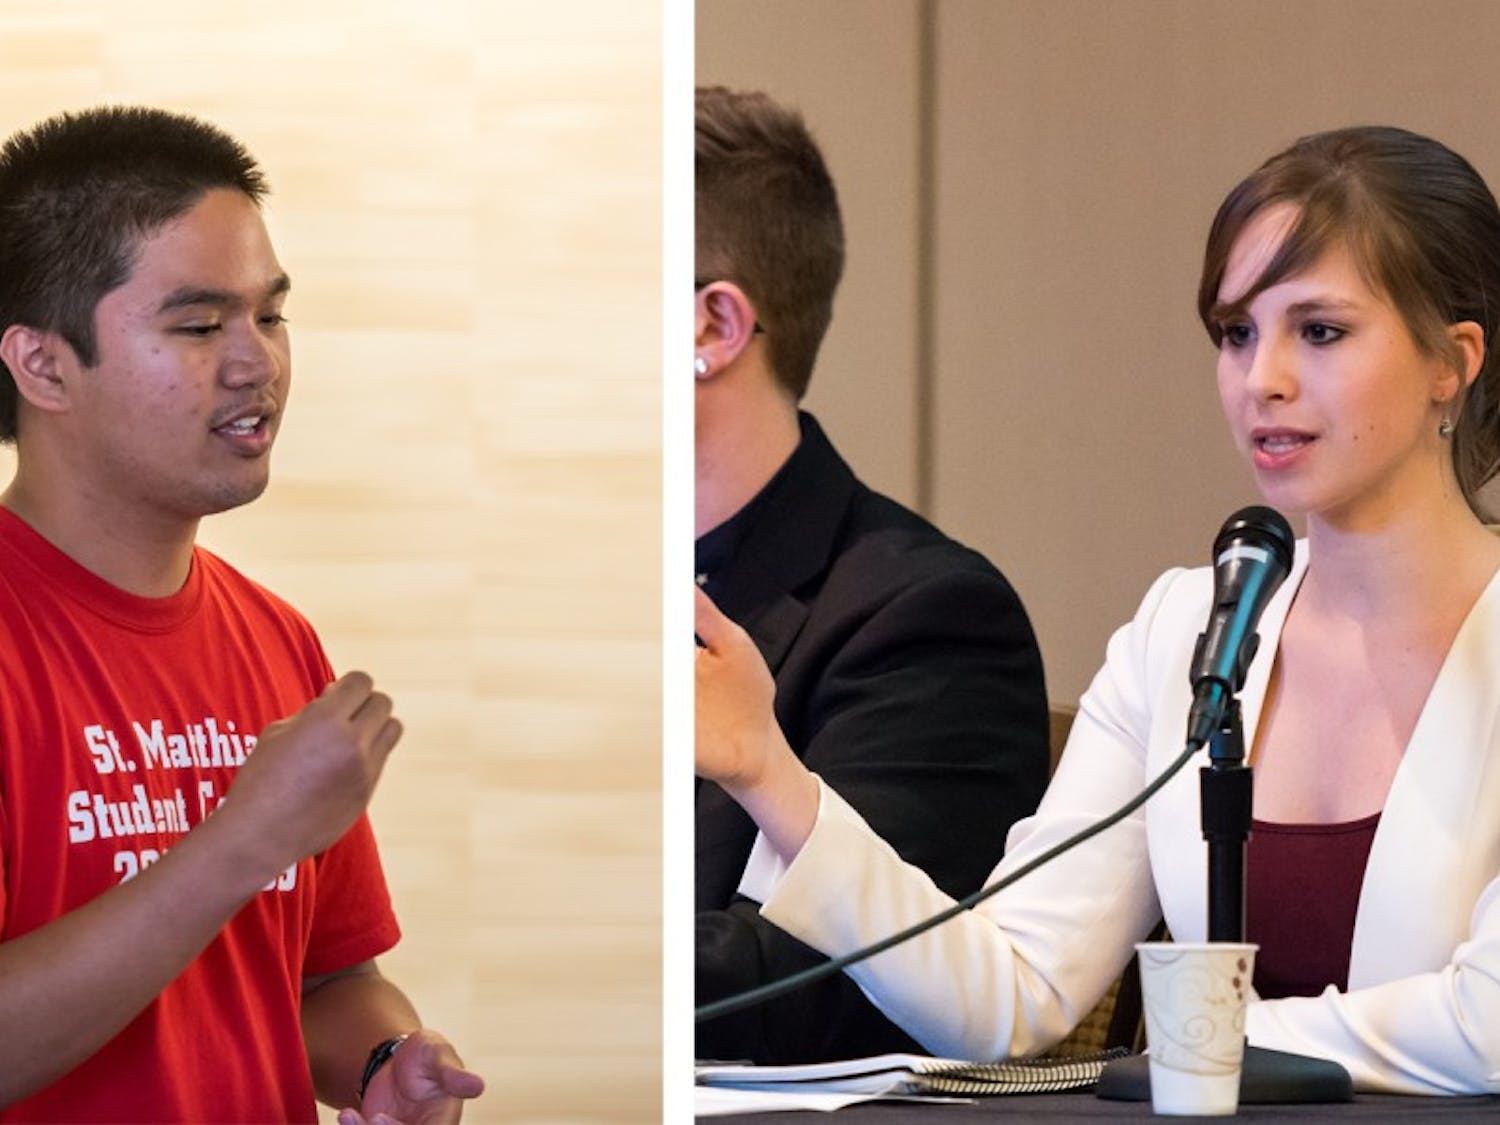 Angelito Tenorio (left) is a current UW-Madison student, and Hayley Young graduated last May. Both are running to be the District 5 representative on the Dane County Board of Supervisors.